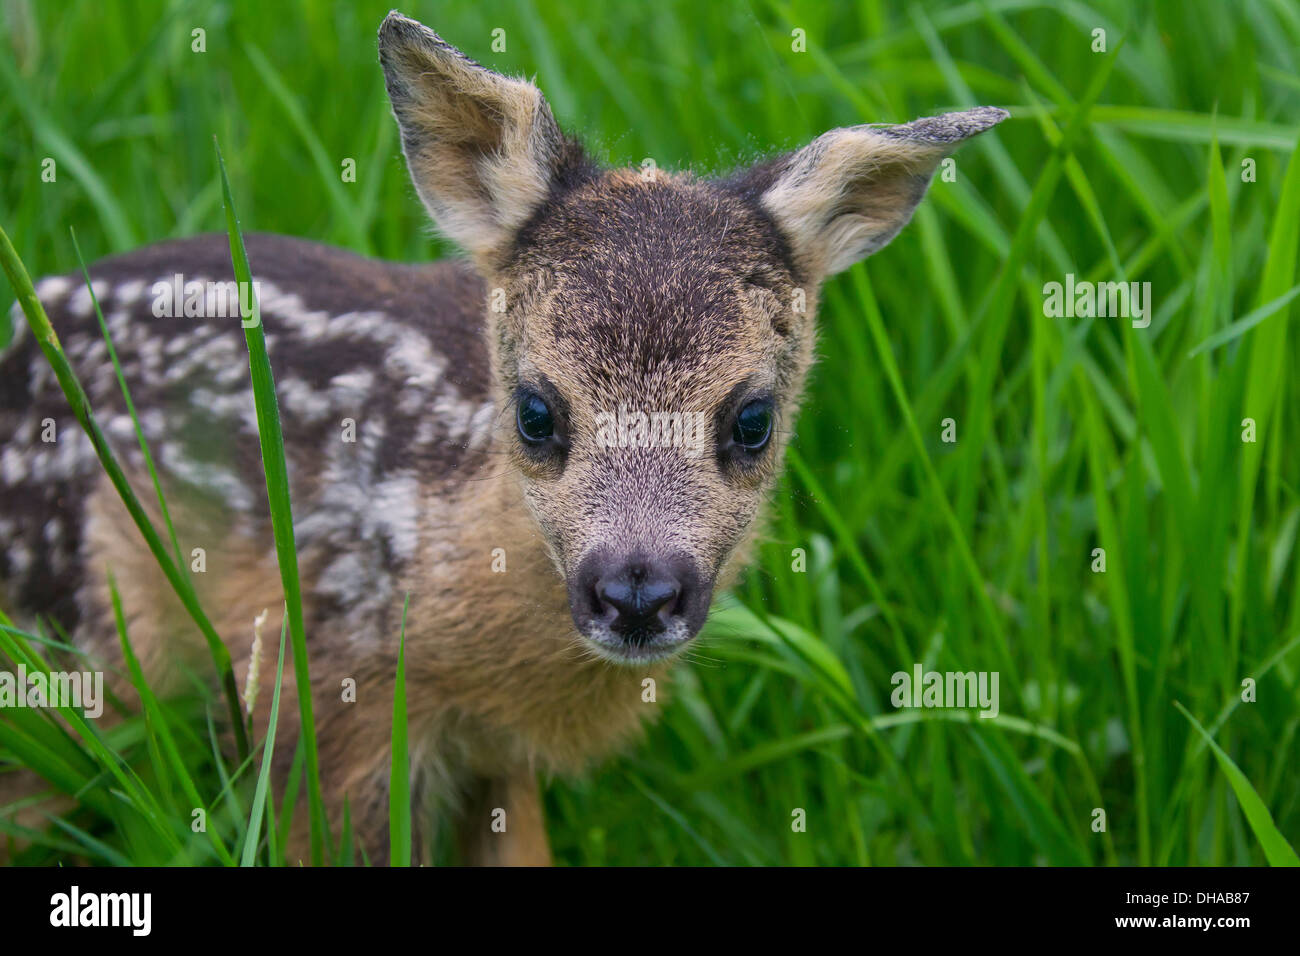 Close up of roe deer (Capreolus capreolus) one day old fawn hidden in tall grass of meadow - Stock Image